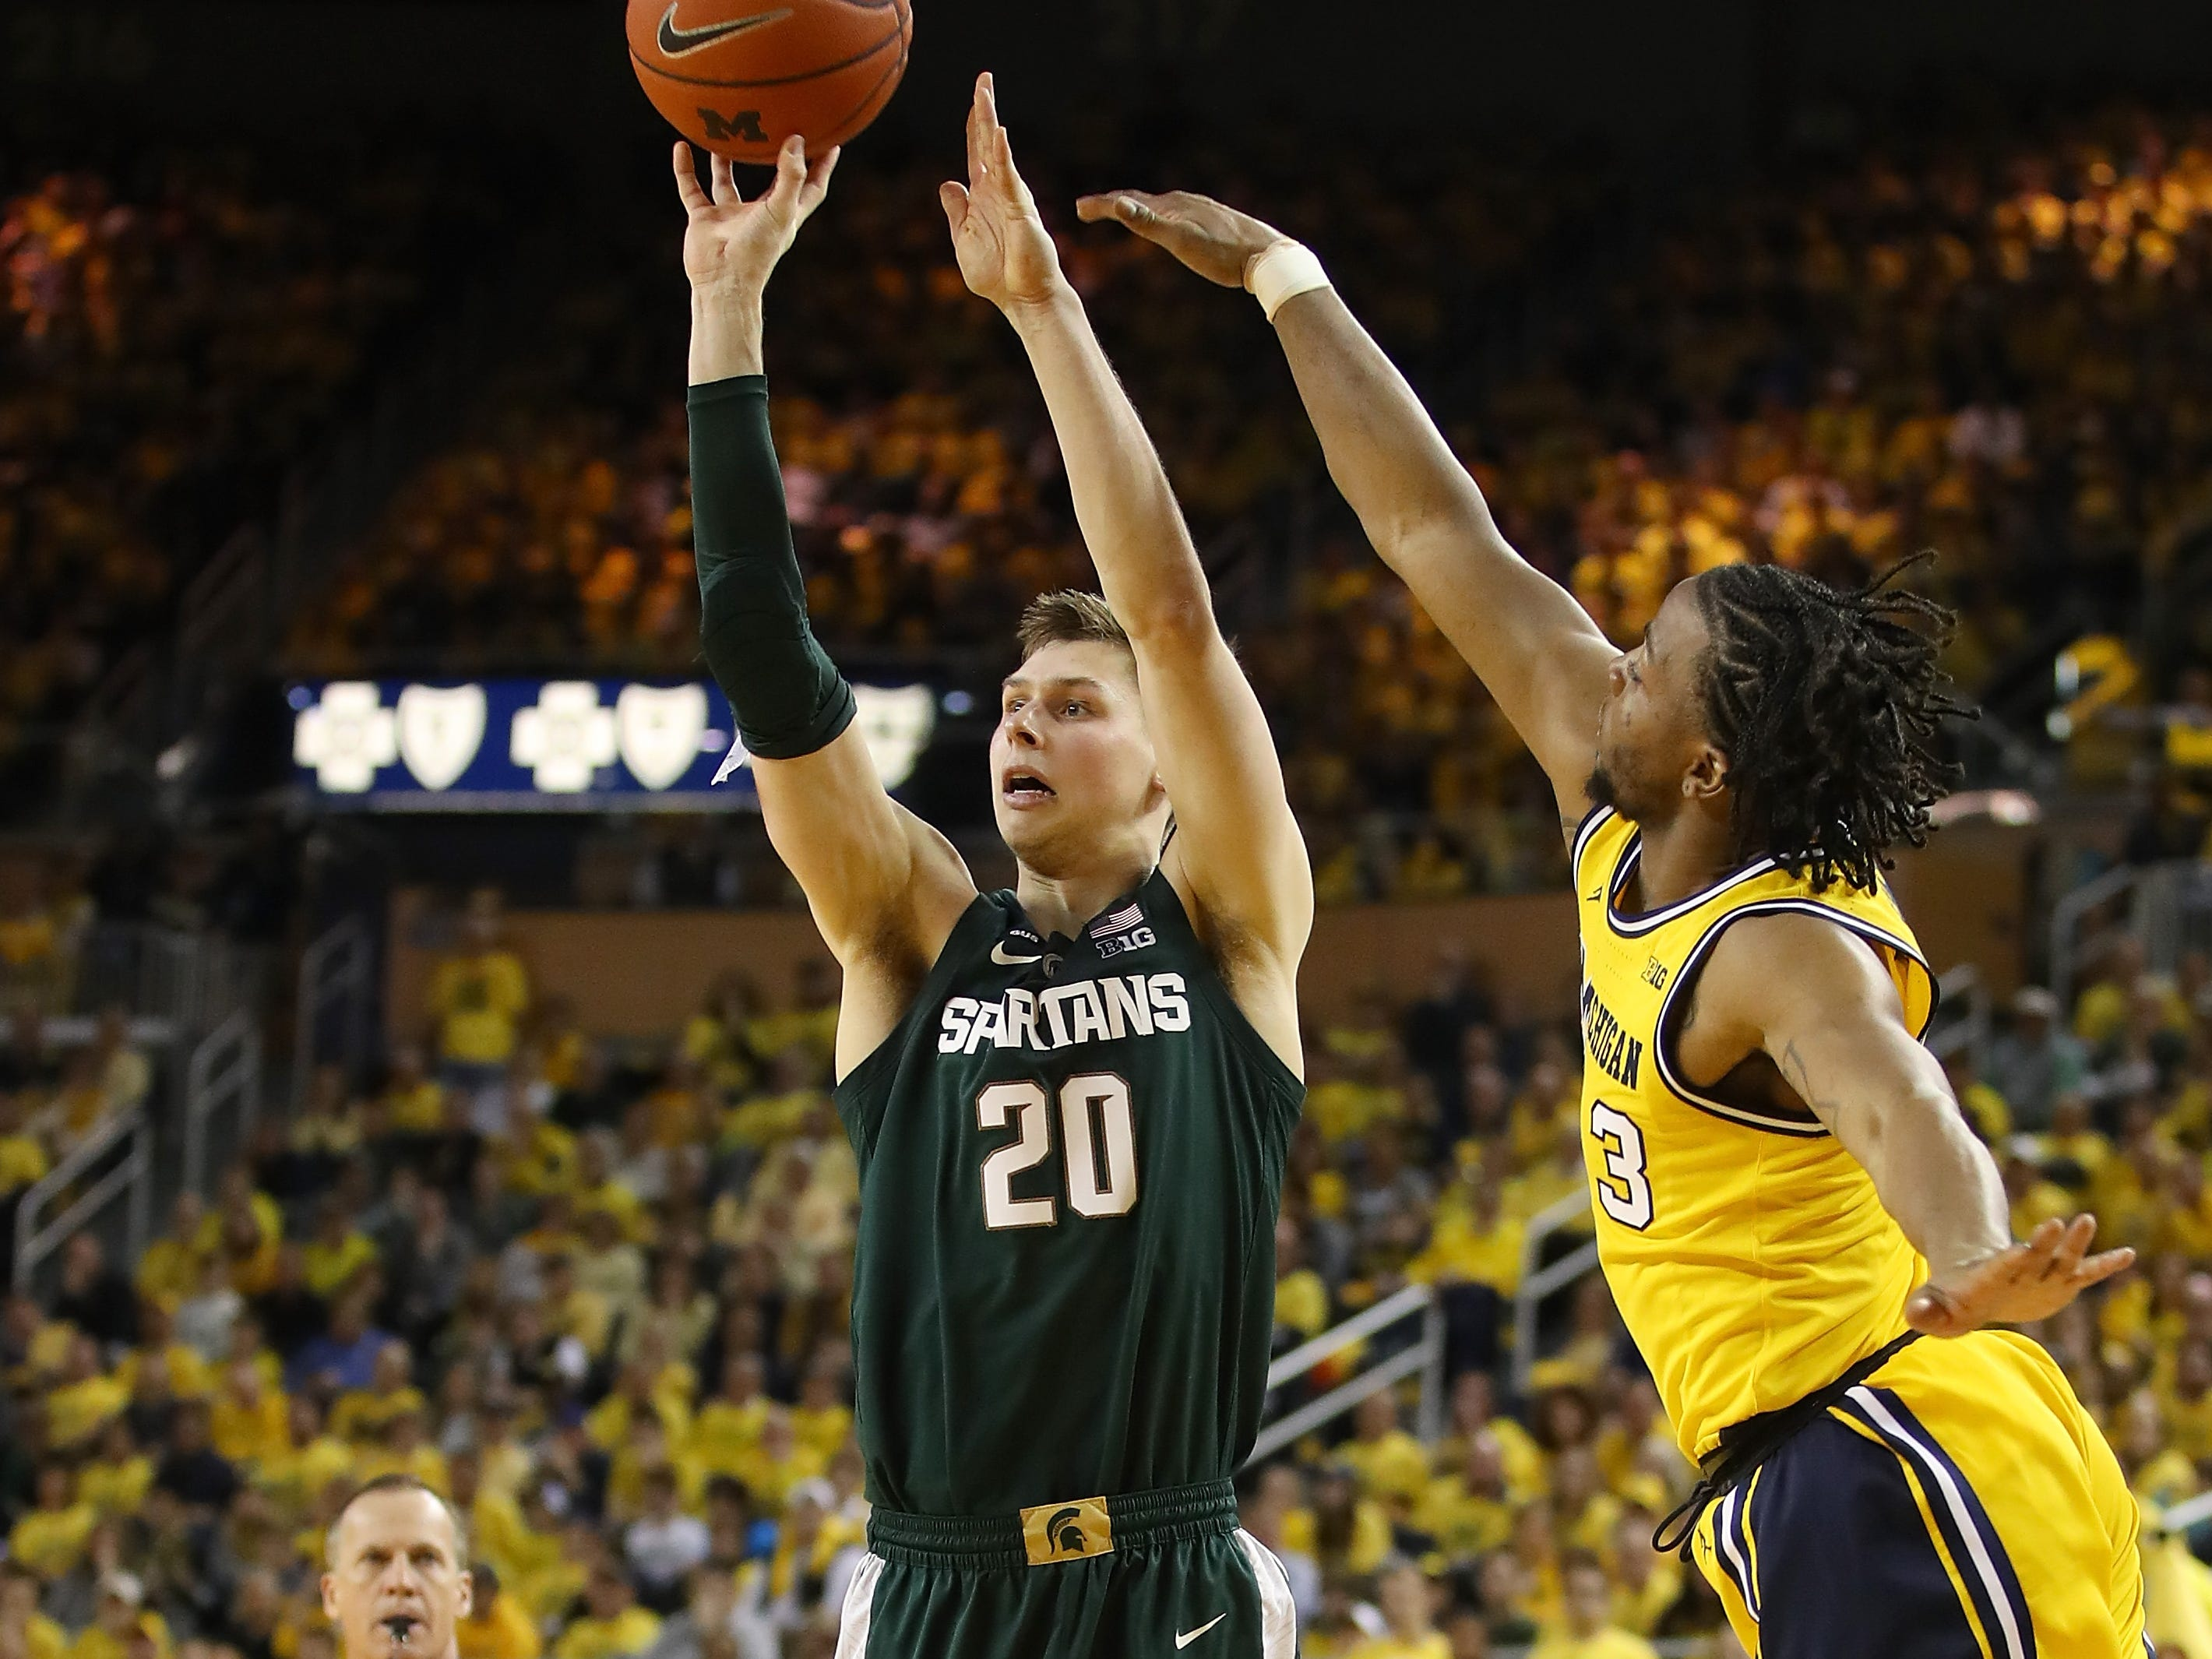 Matt McQuaid #20 of the Michigan State Spartans takes a shot next to Zavier Simpson #3 of the Michigan Wolverines during the second half at Crisler Arena on February 24, 2019 in Ann Arbor, Michigan. Michigan State won the game 77-70.